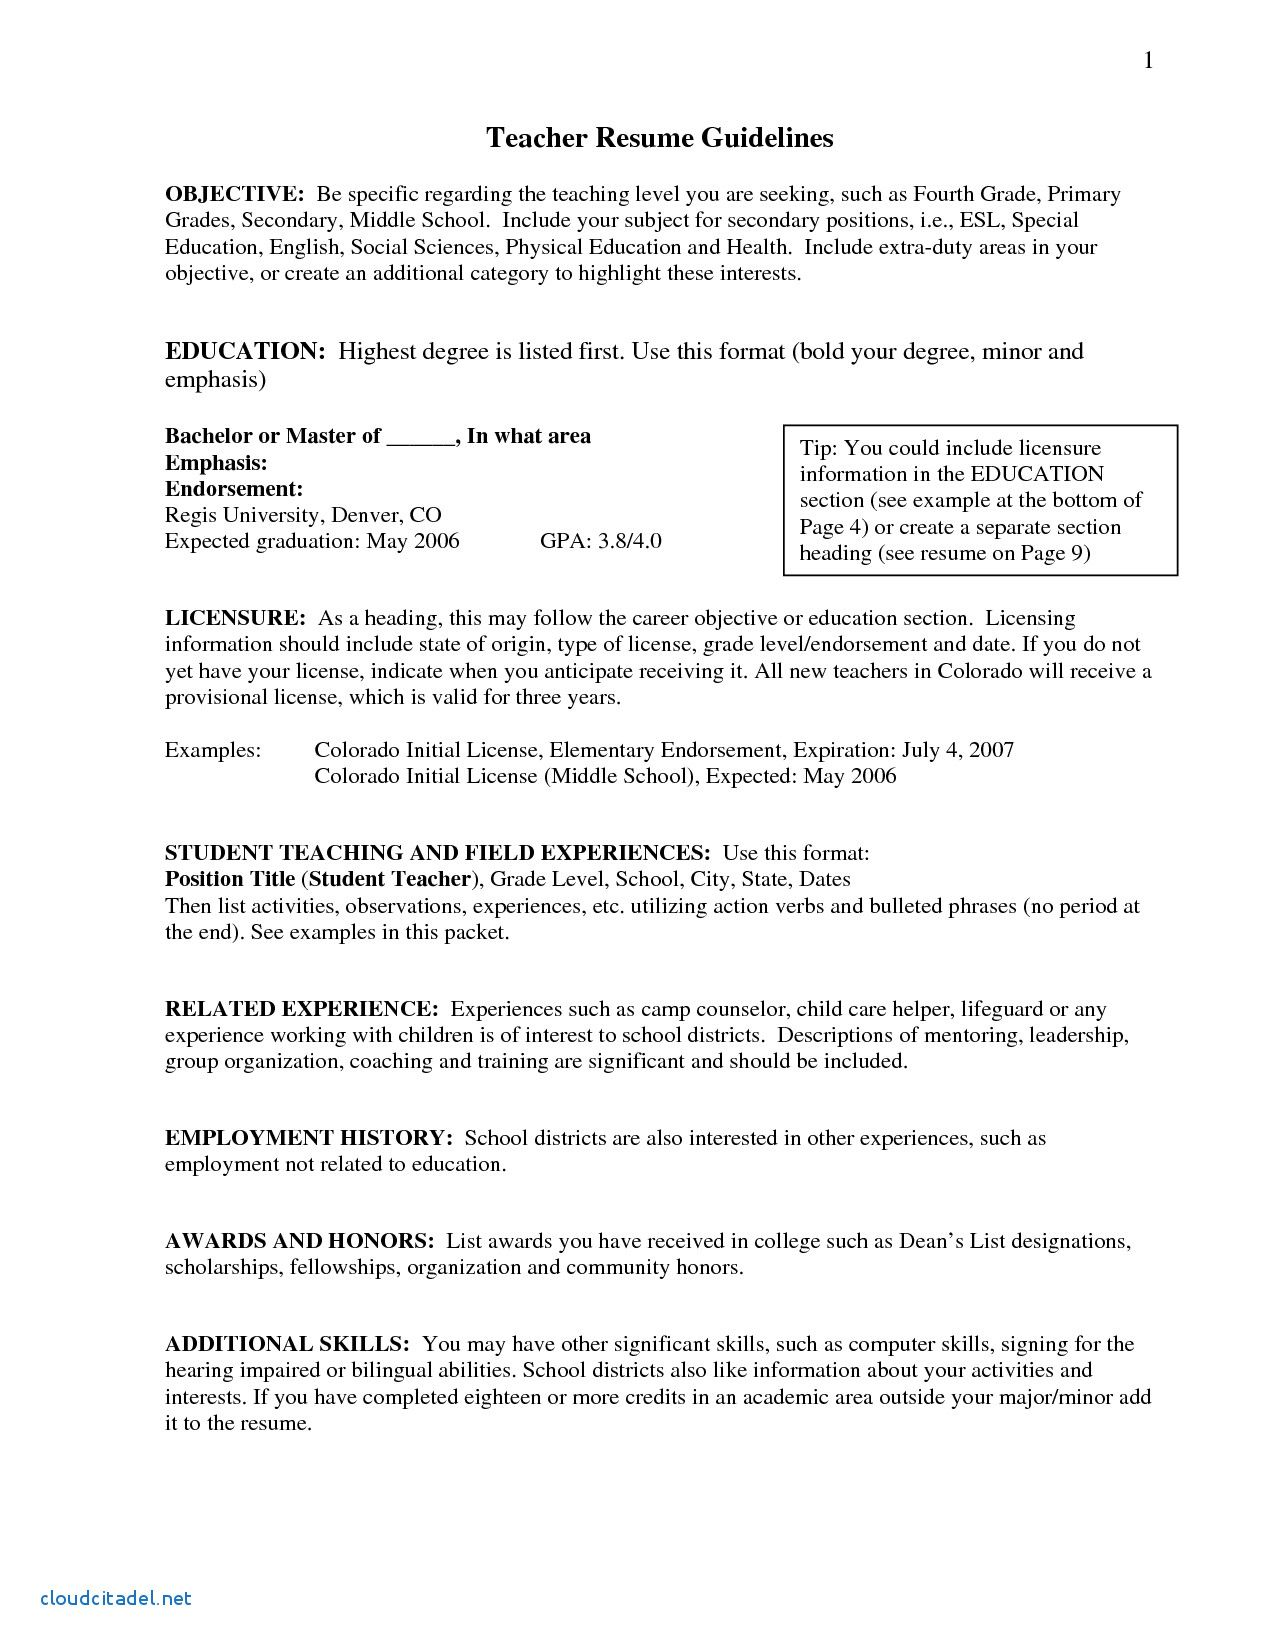 73 Luxury Stock Of Resume Objective Examples Trainer Check More At Https Www Ourpetscrawley Com 73 Luxury Stock Of Resume Objective Examples Trainer